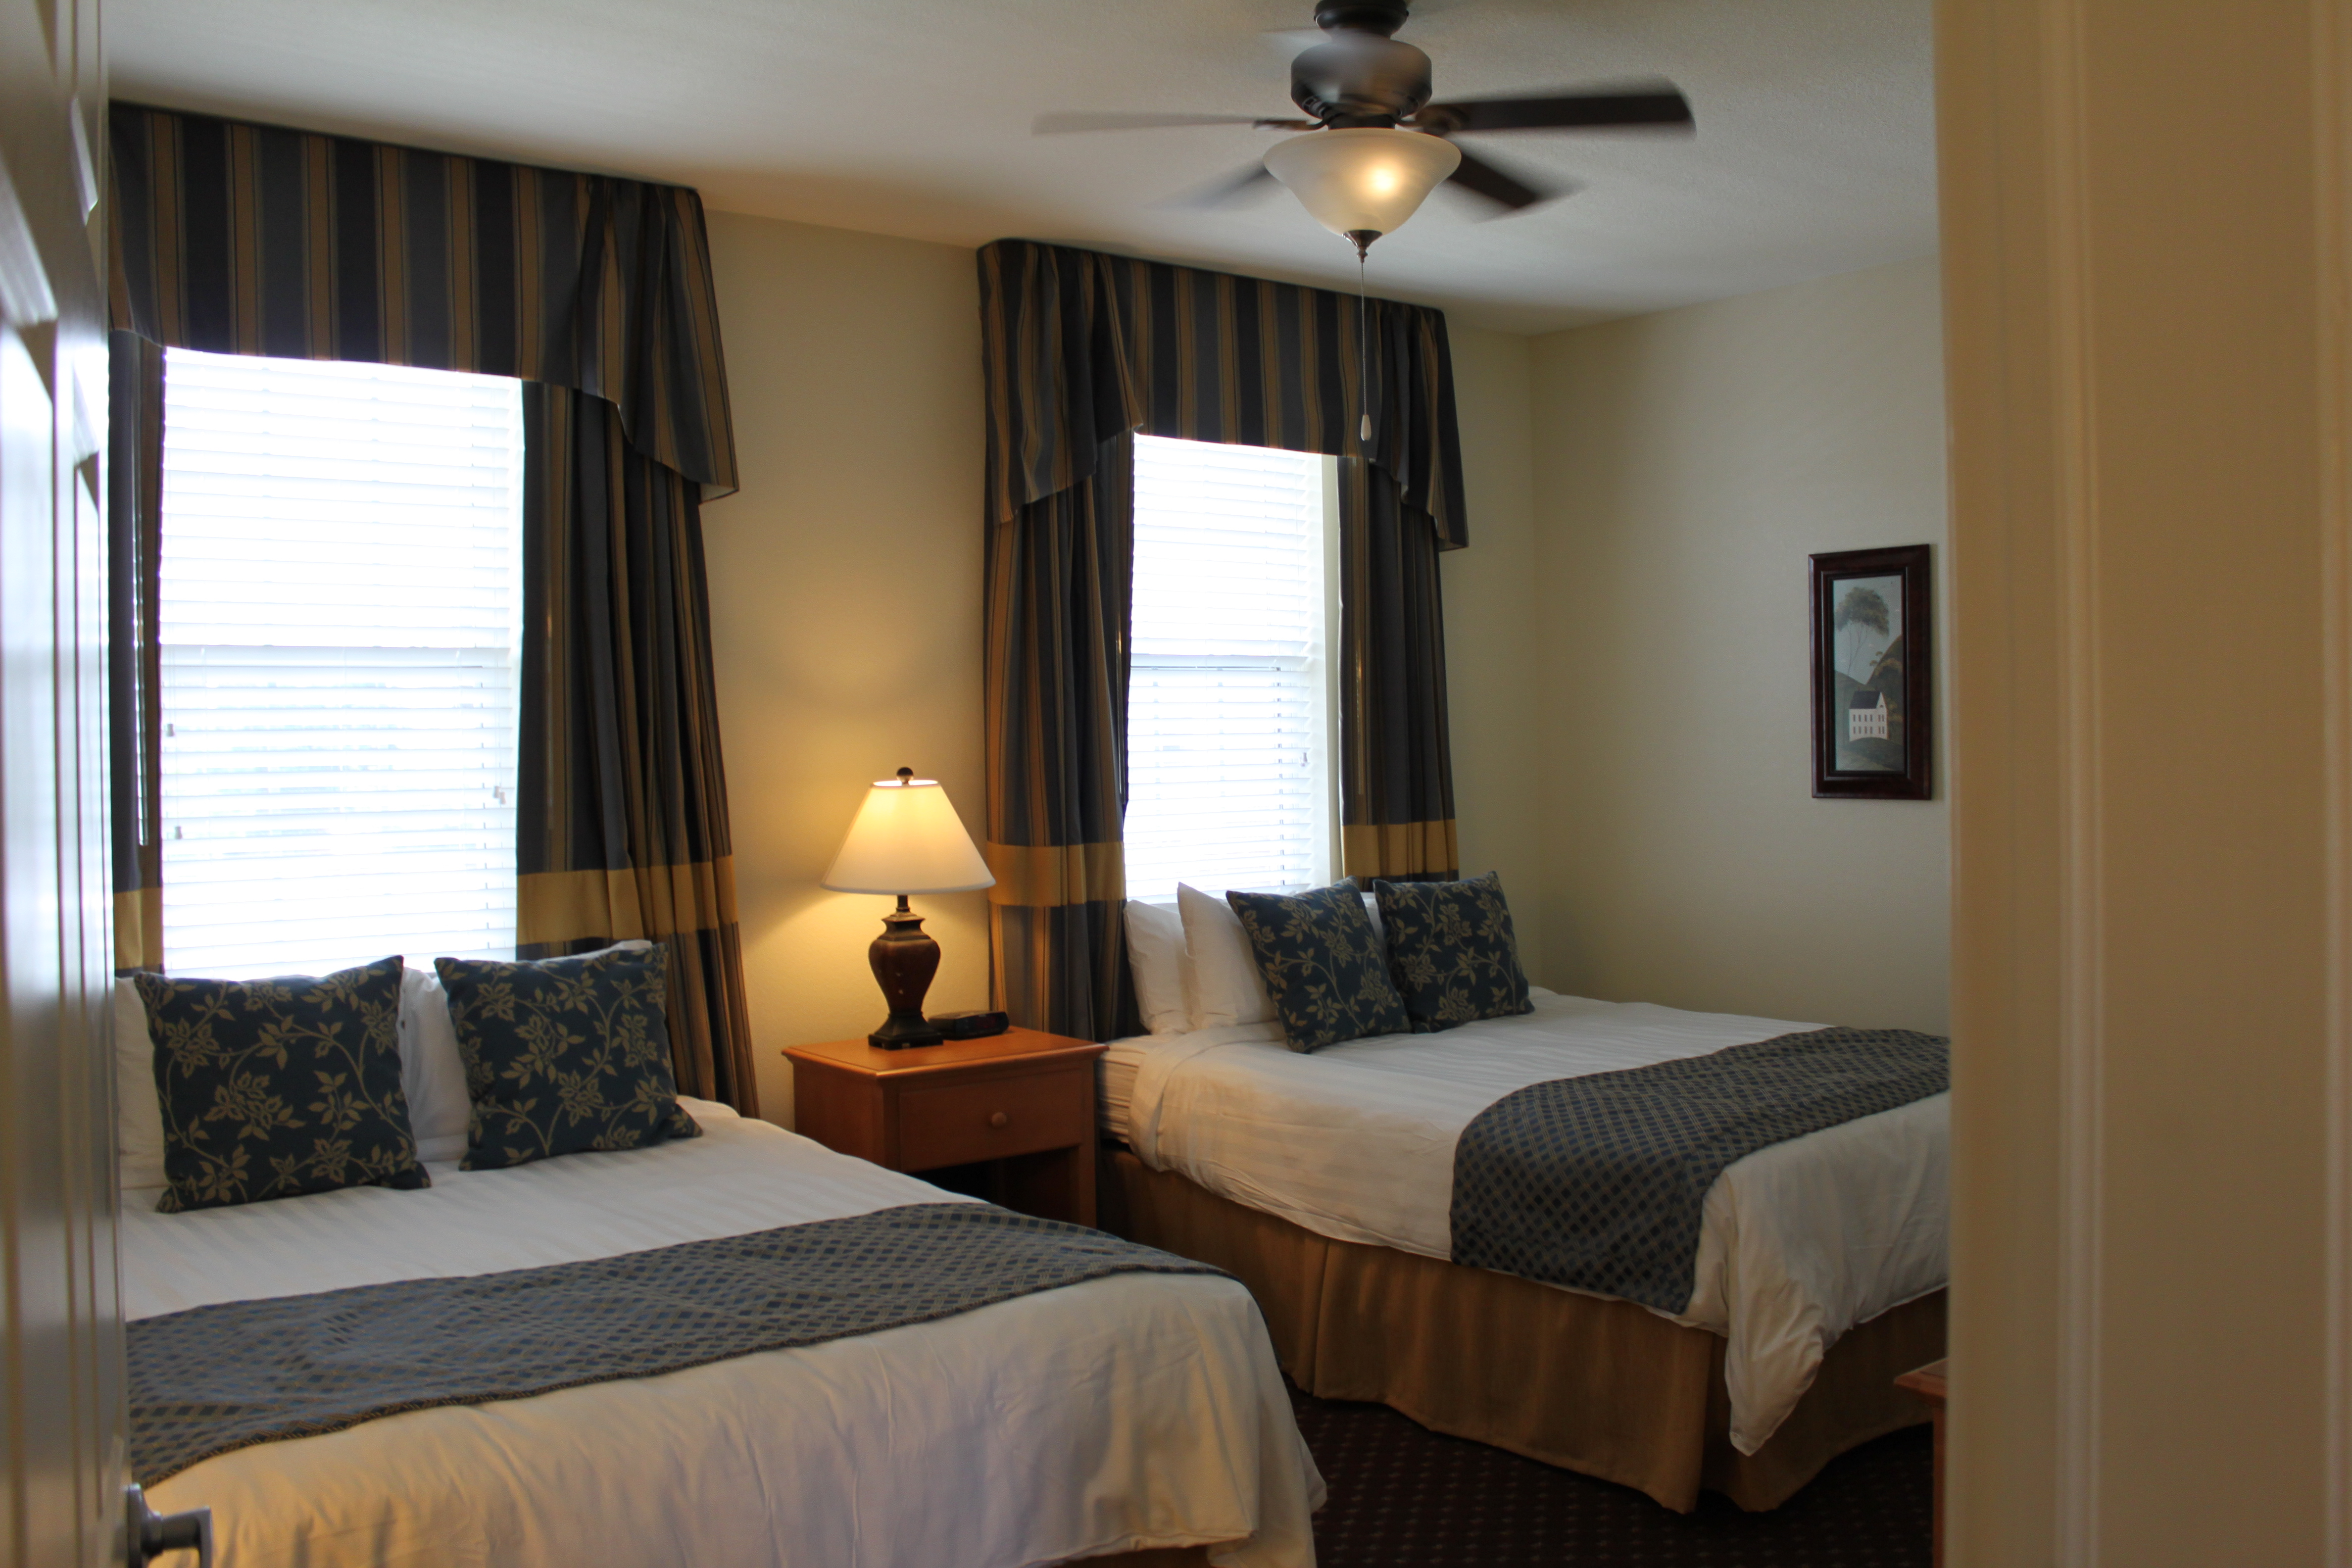 2 bedroom suites near busch gardens va garden ftempo - 2 bedroom hotels in virginia beach ...